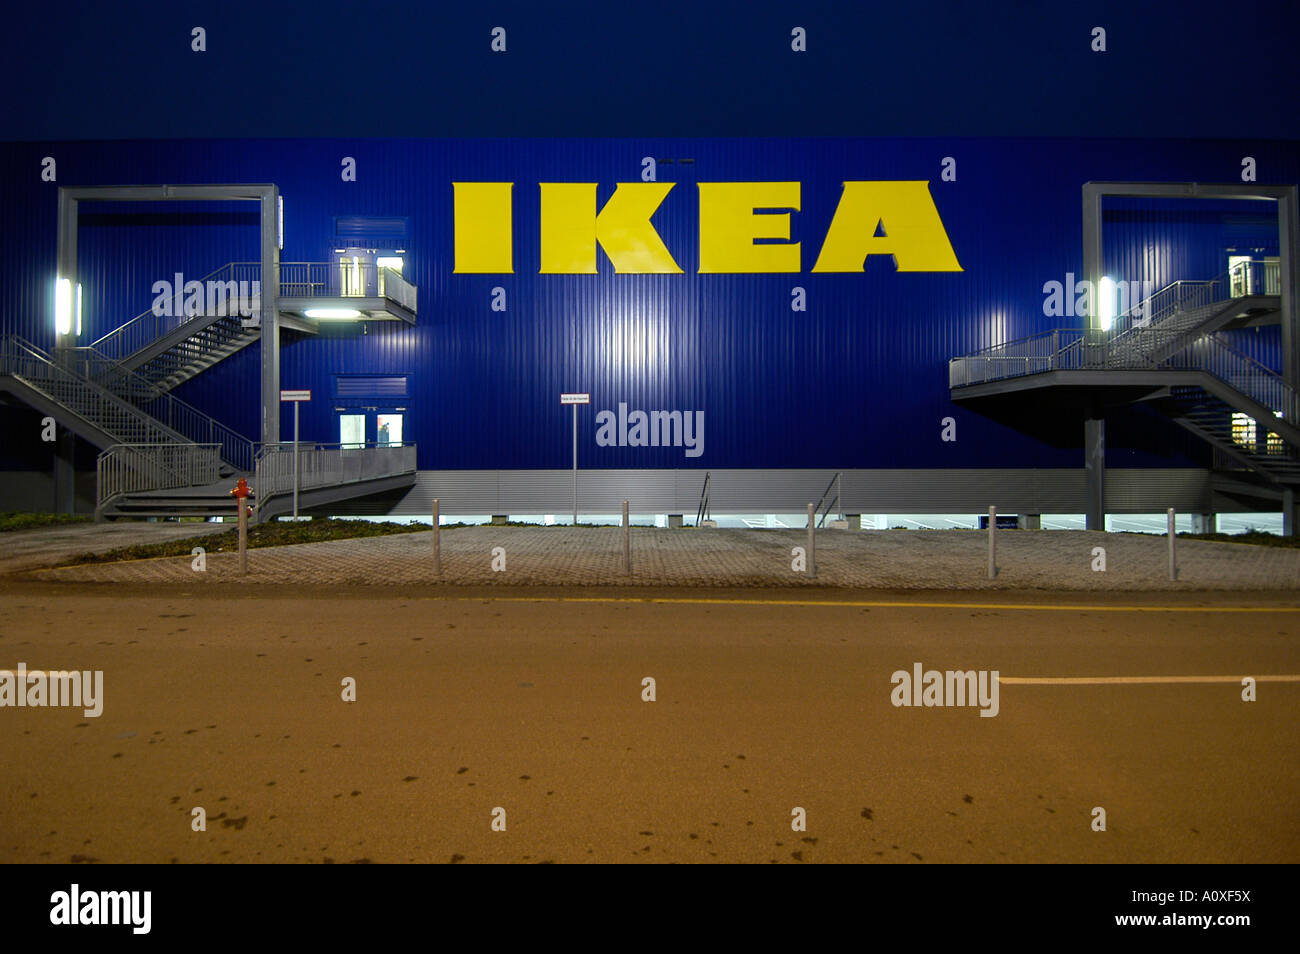 ikea customer stock photos ikea customer stock images alamy. Black Bedroom Furniture Sets. Home Design Ideas